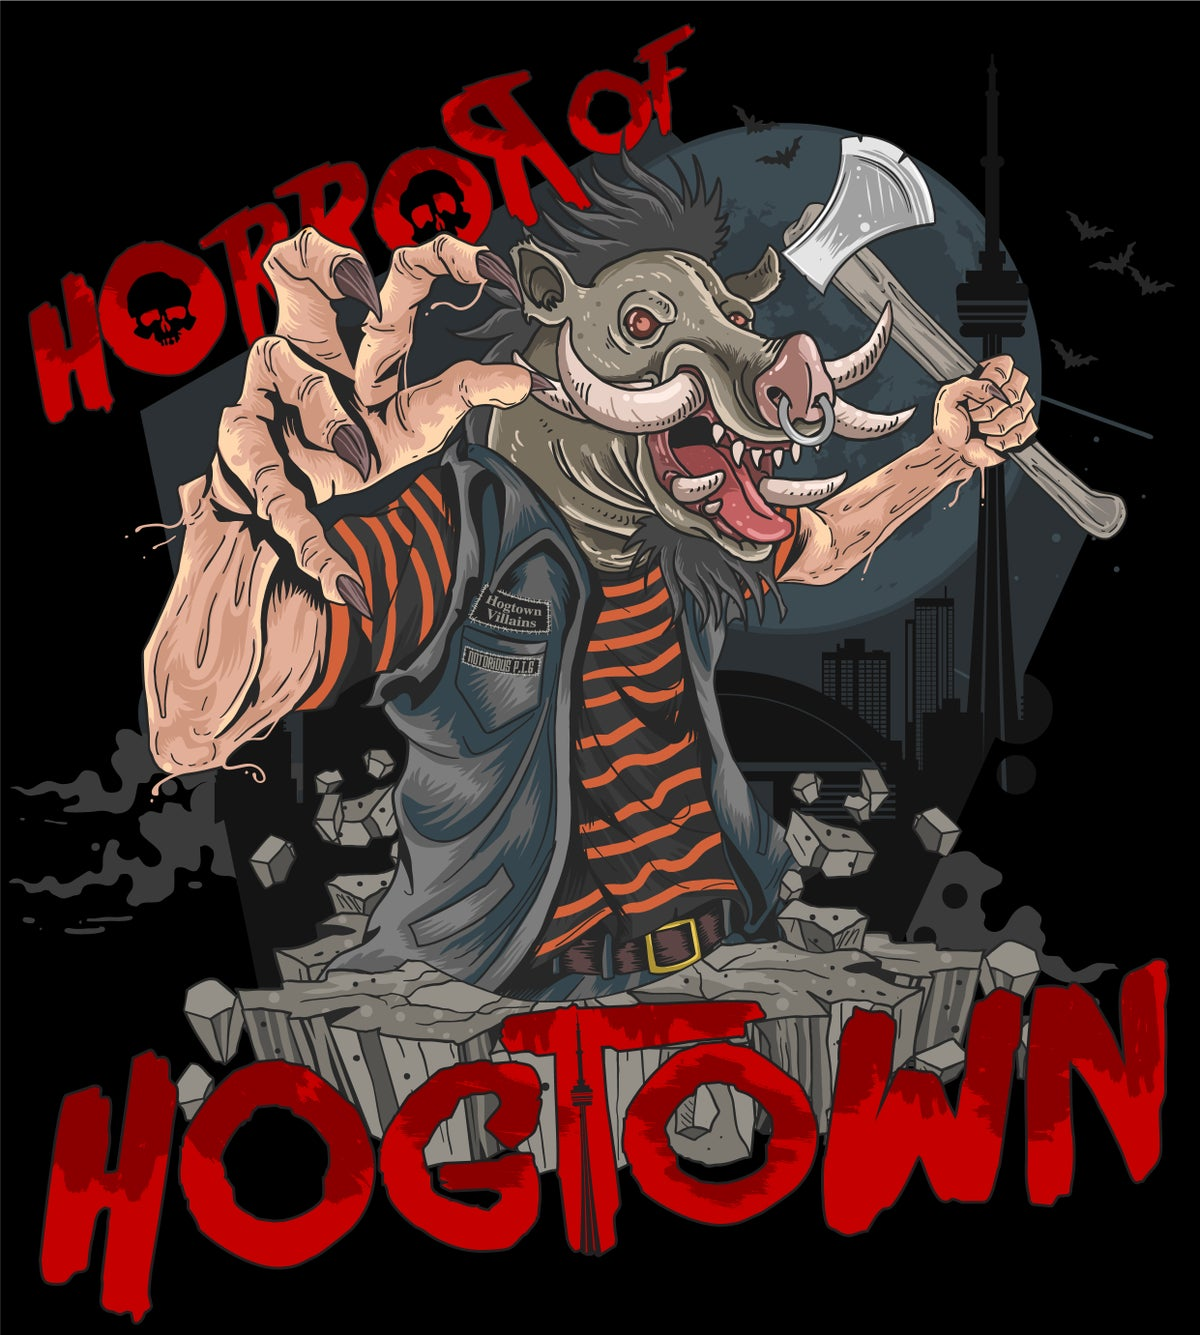 The Horror of HOGTWON